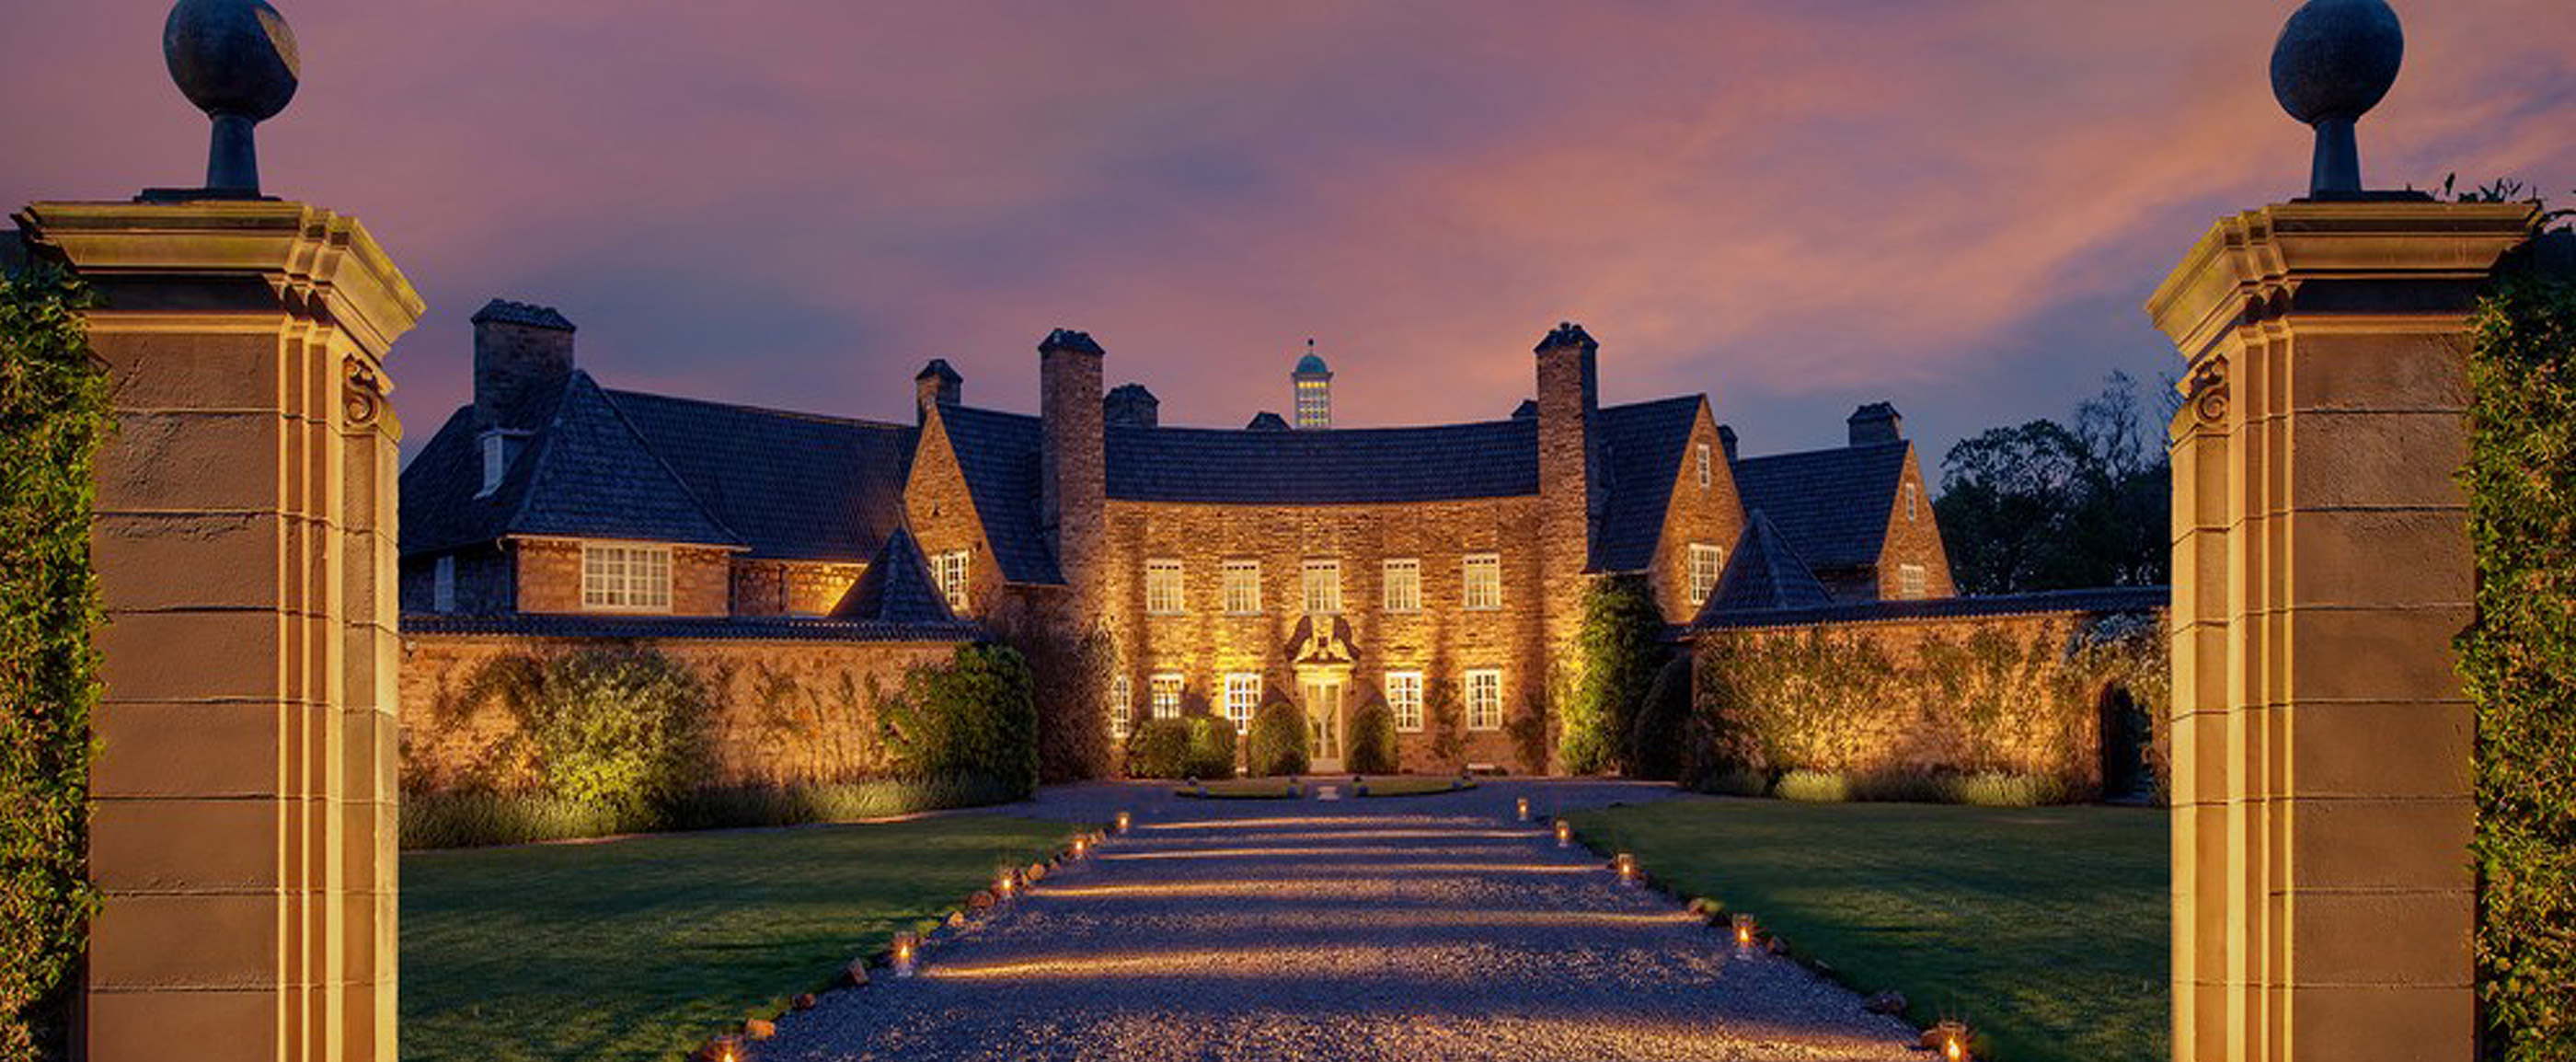 Photo of the exterior of Greywalls House, illuminated in the evening.